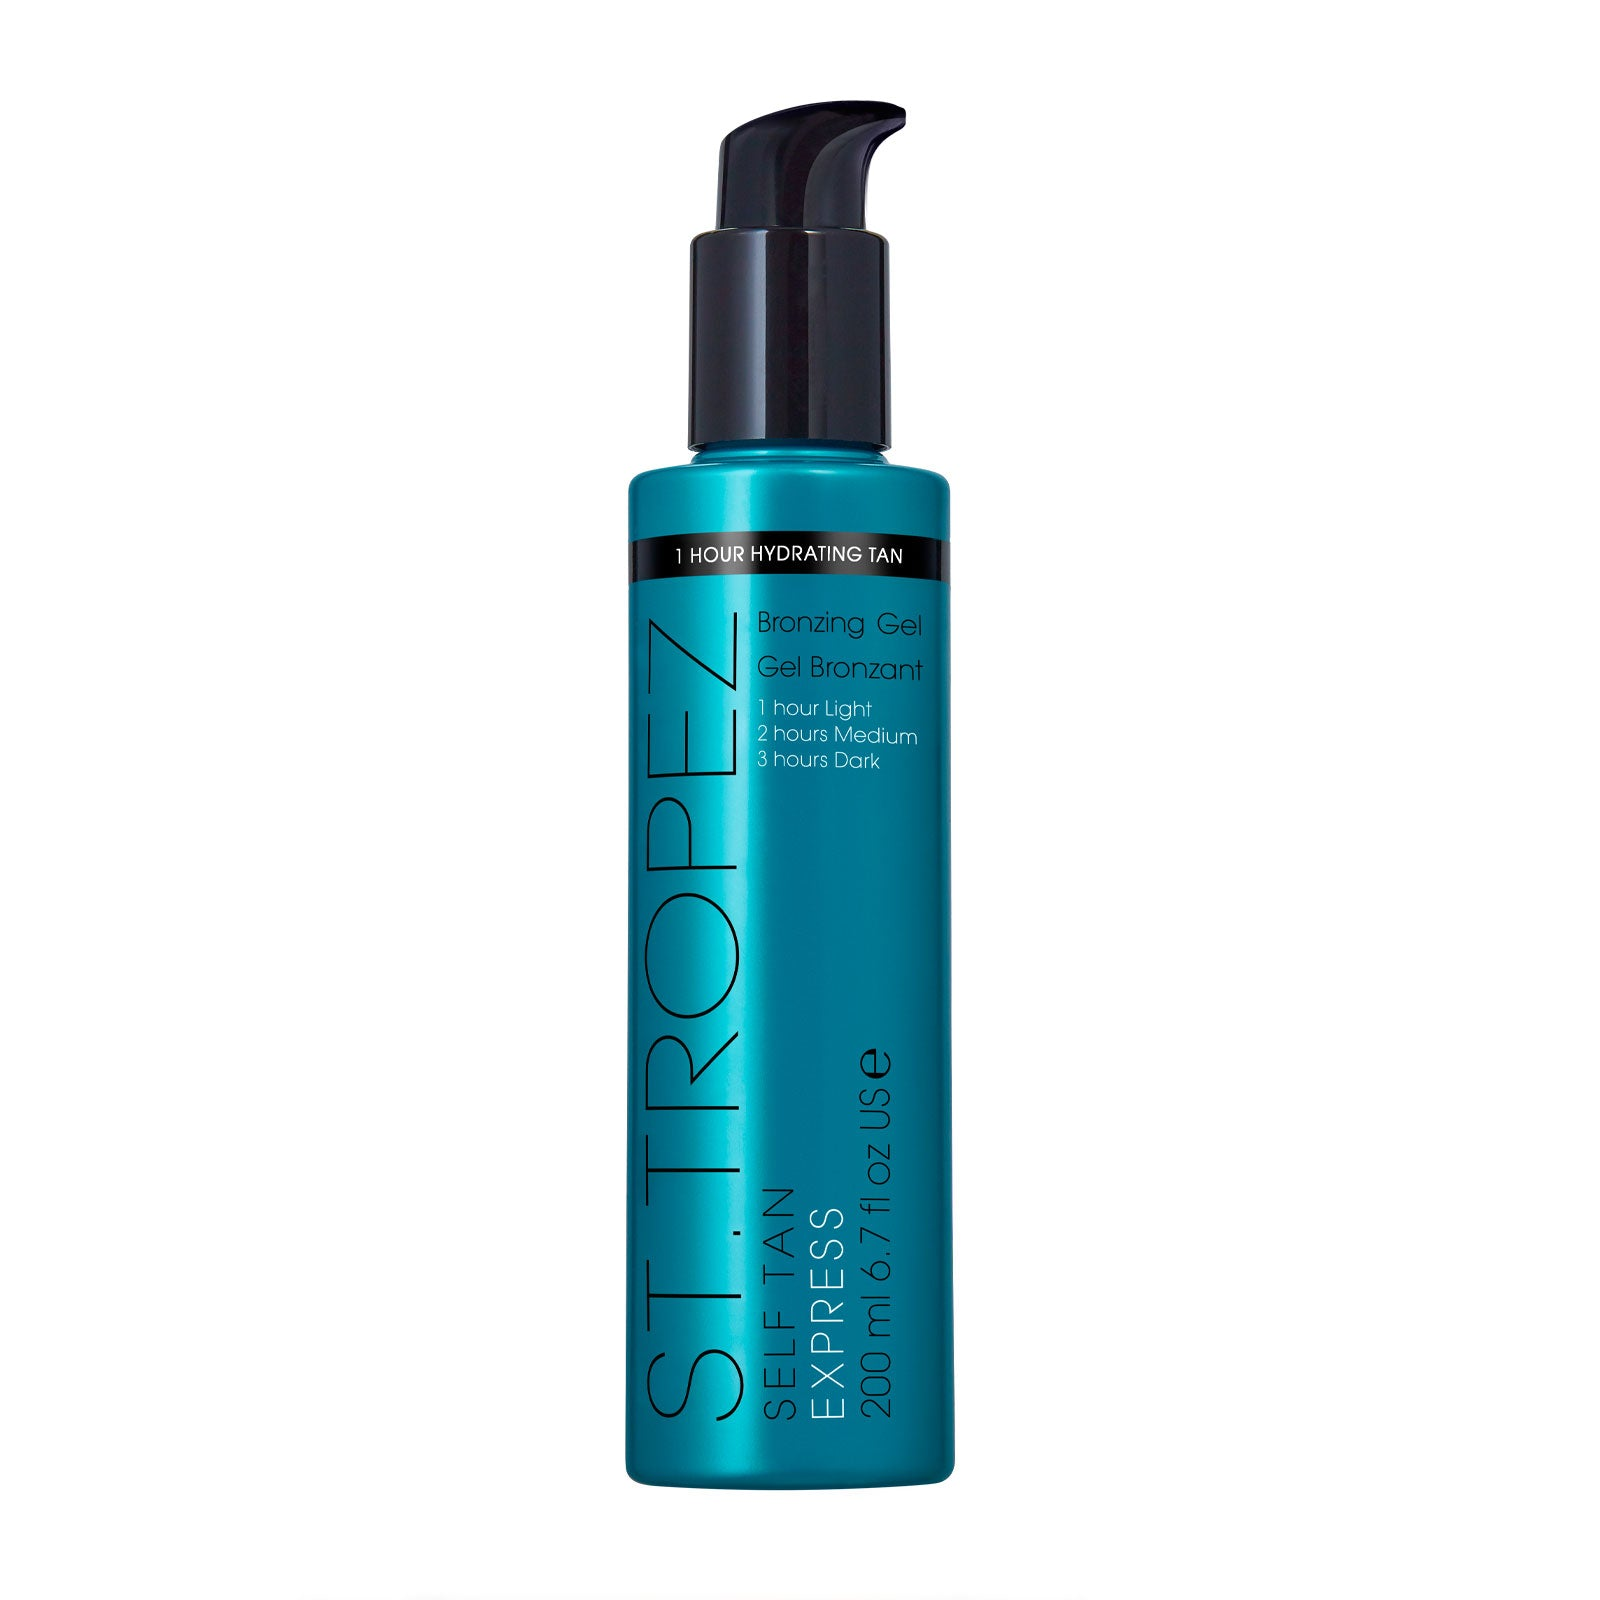 St. Tropez Self Tan Express Gel 200ml